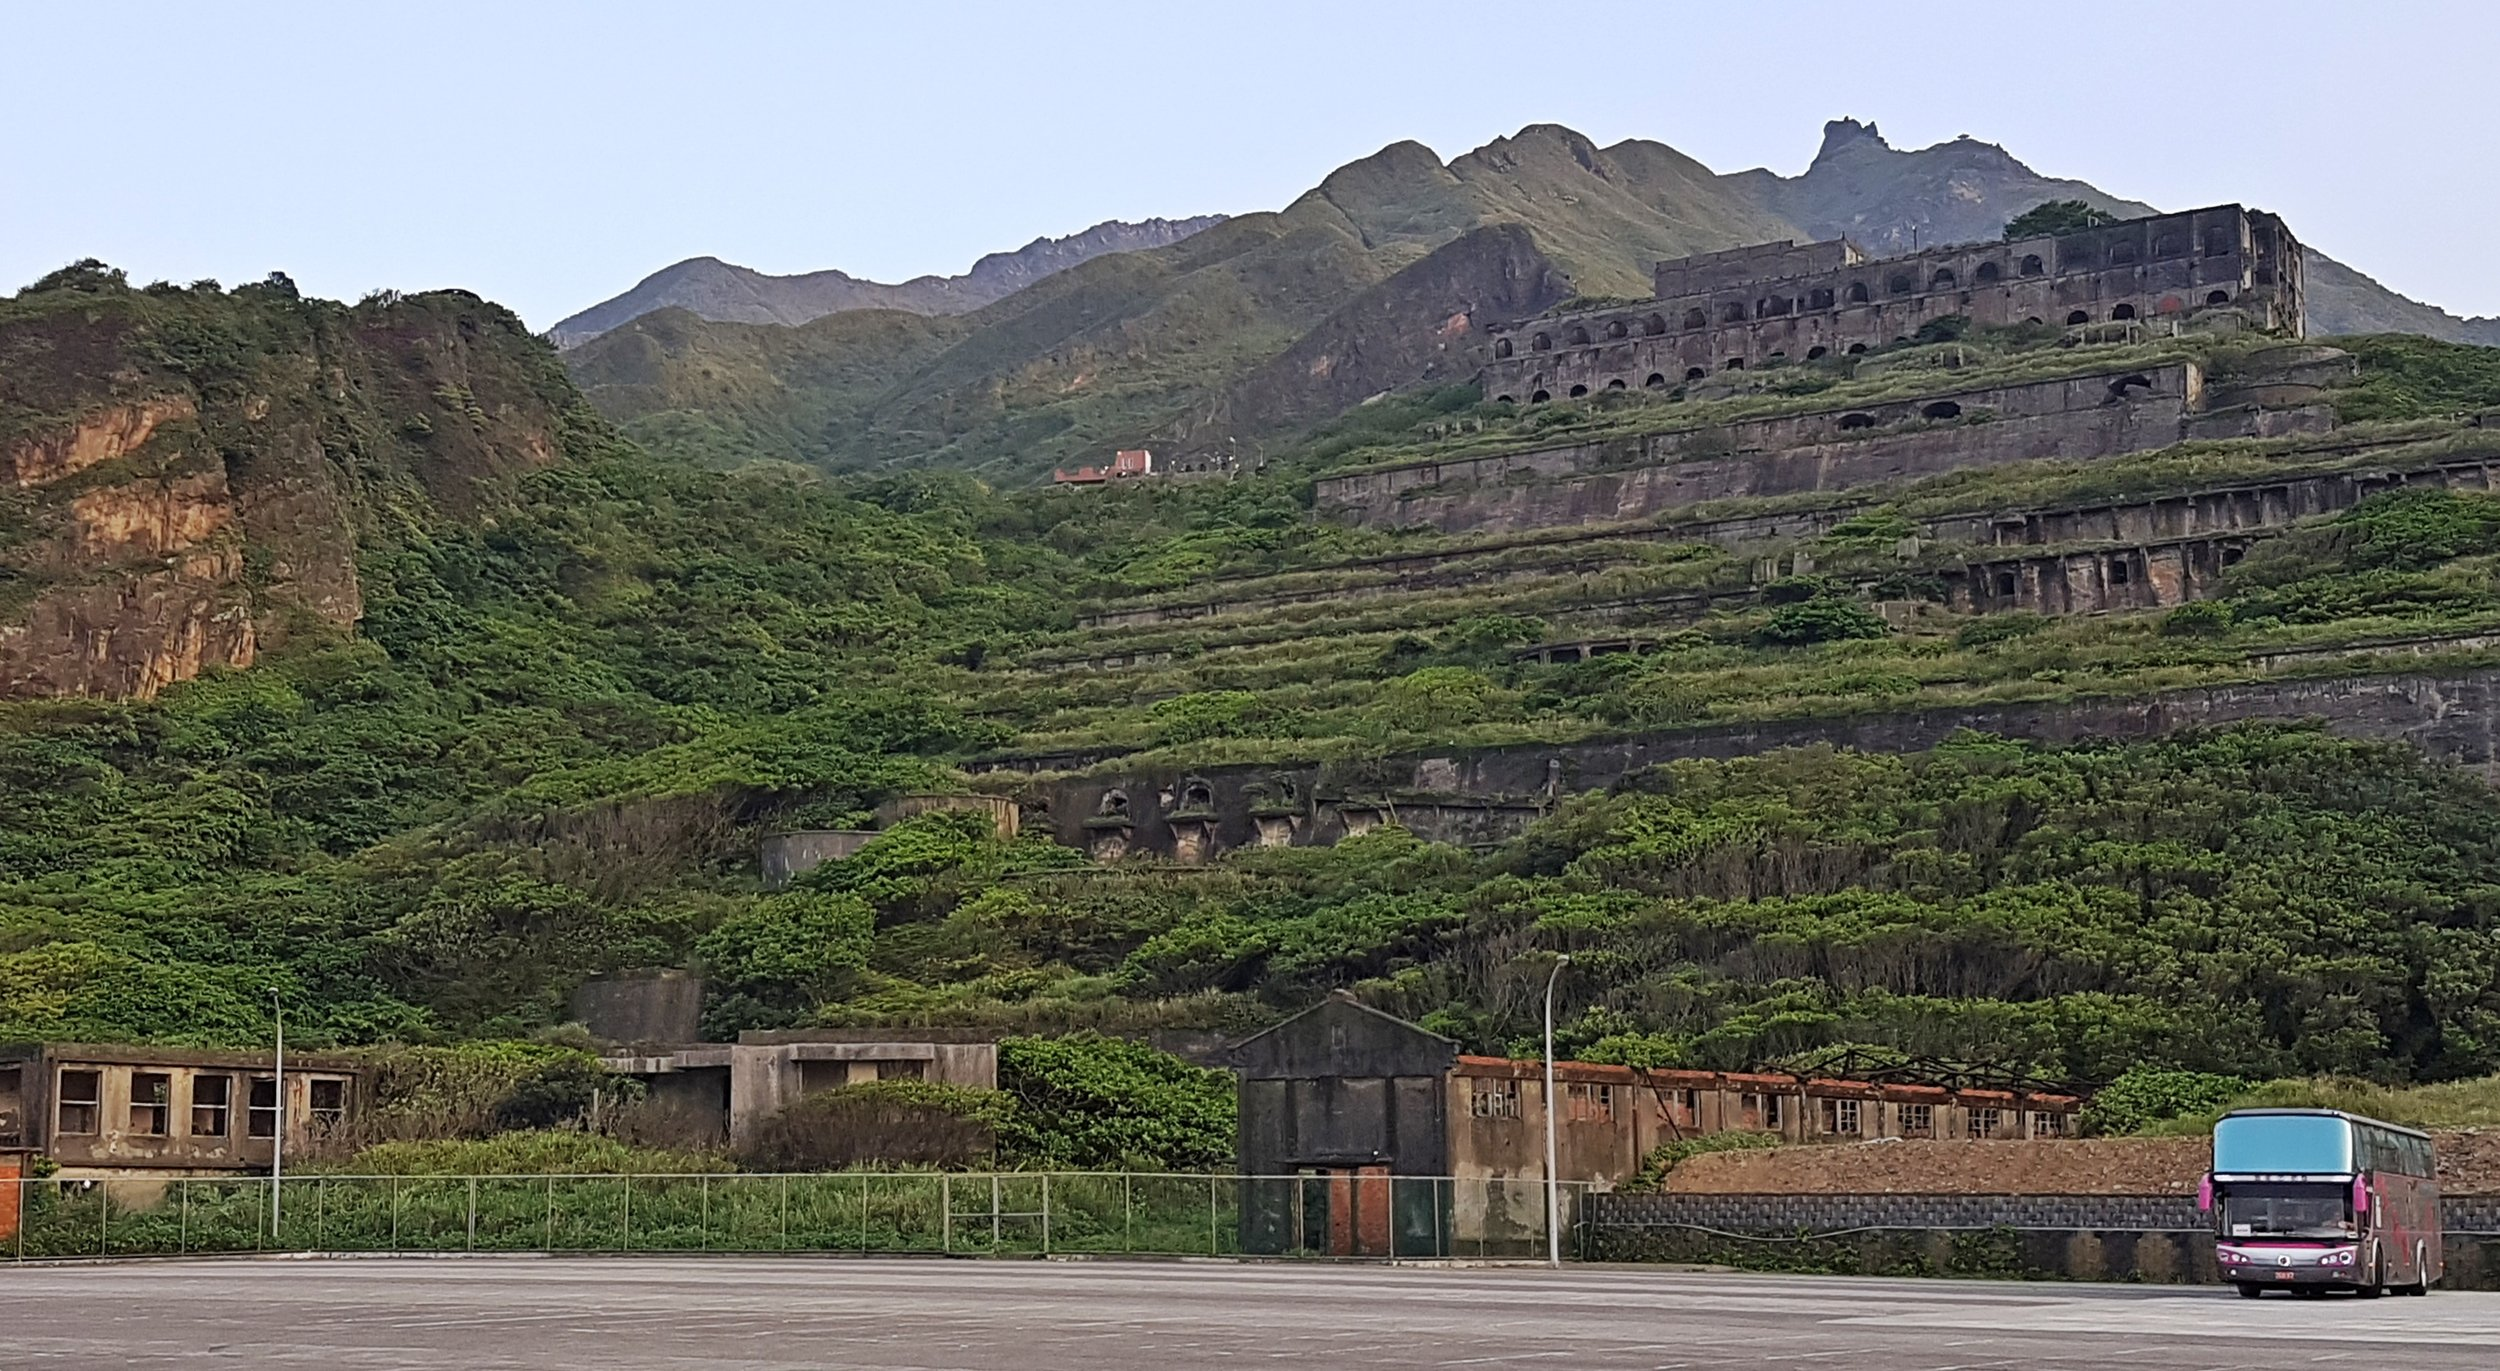 The car park where the 8 and 9 tunnels are buried.